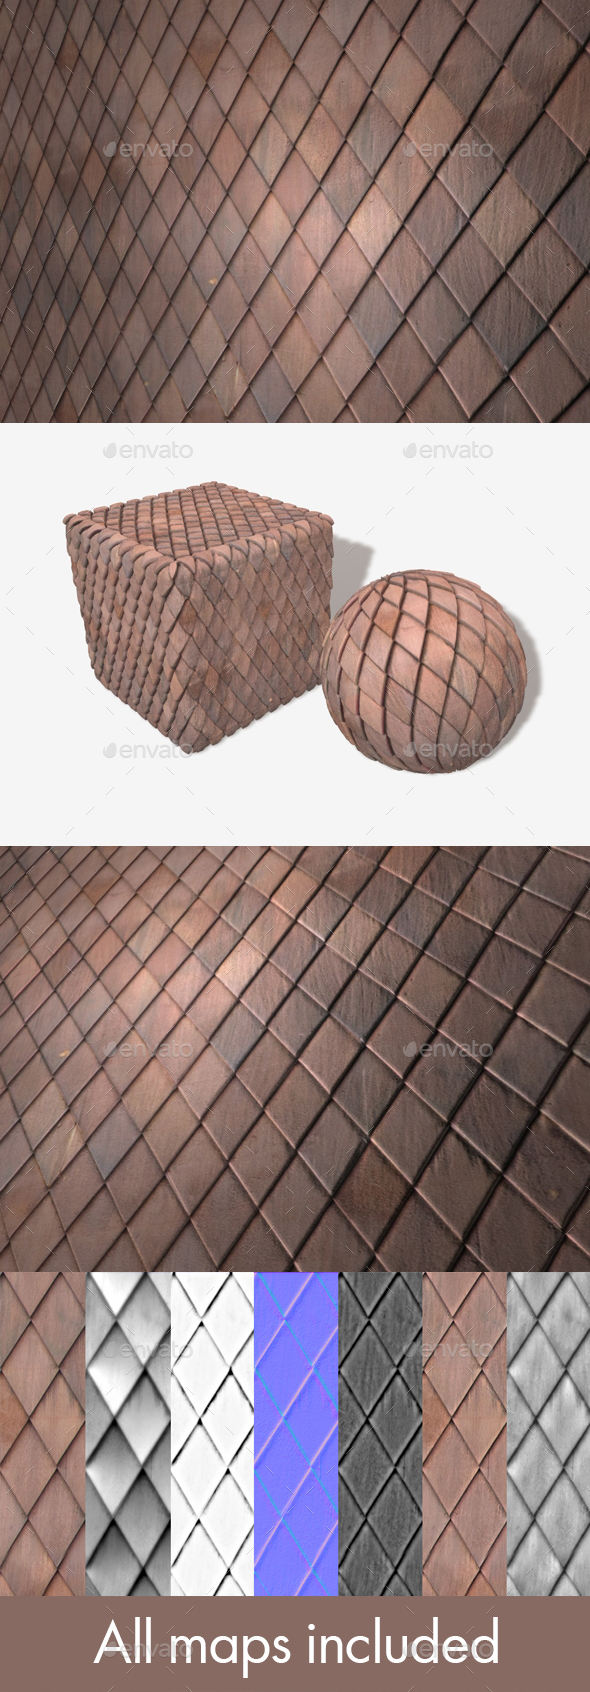 Diamond Wooden Building Tiles Seamless Texture - 3DOcean Item for Sale